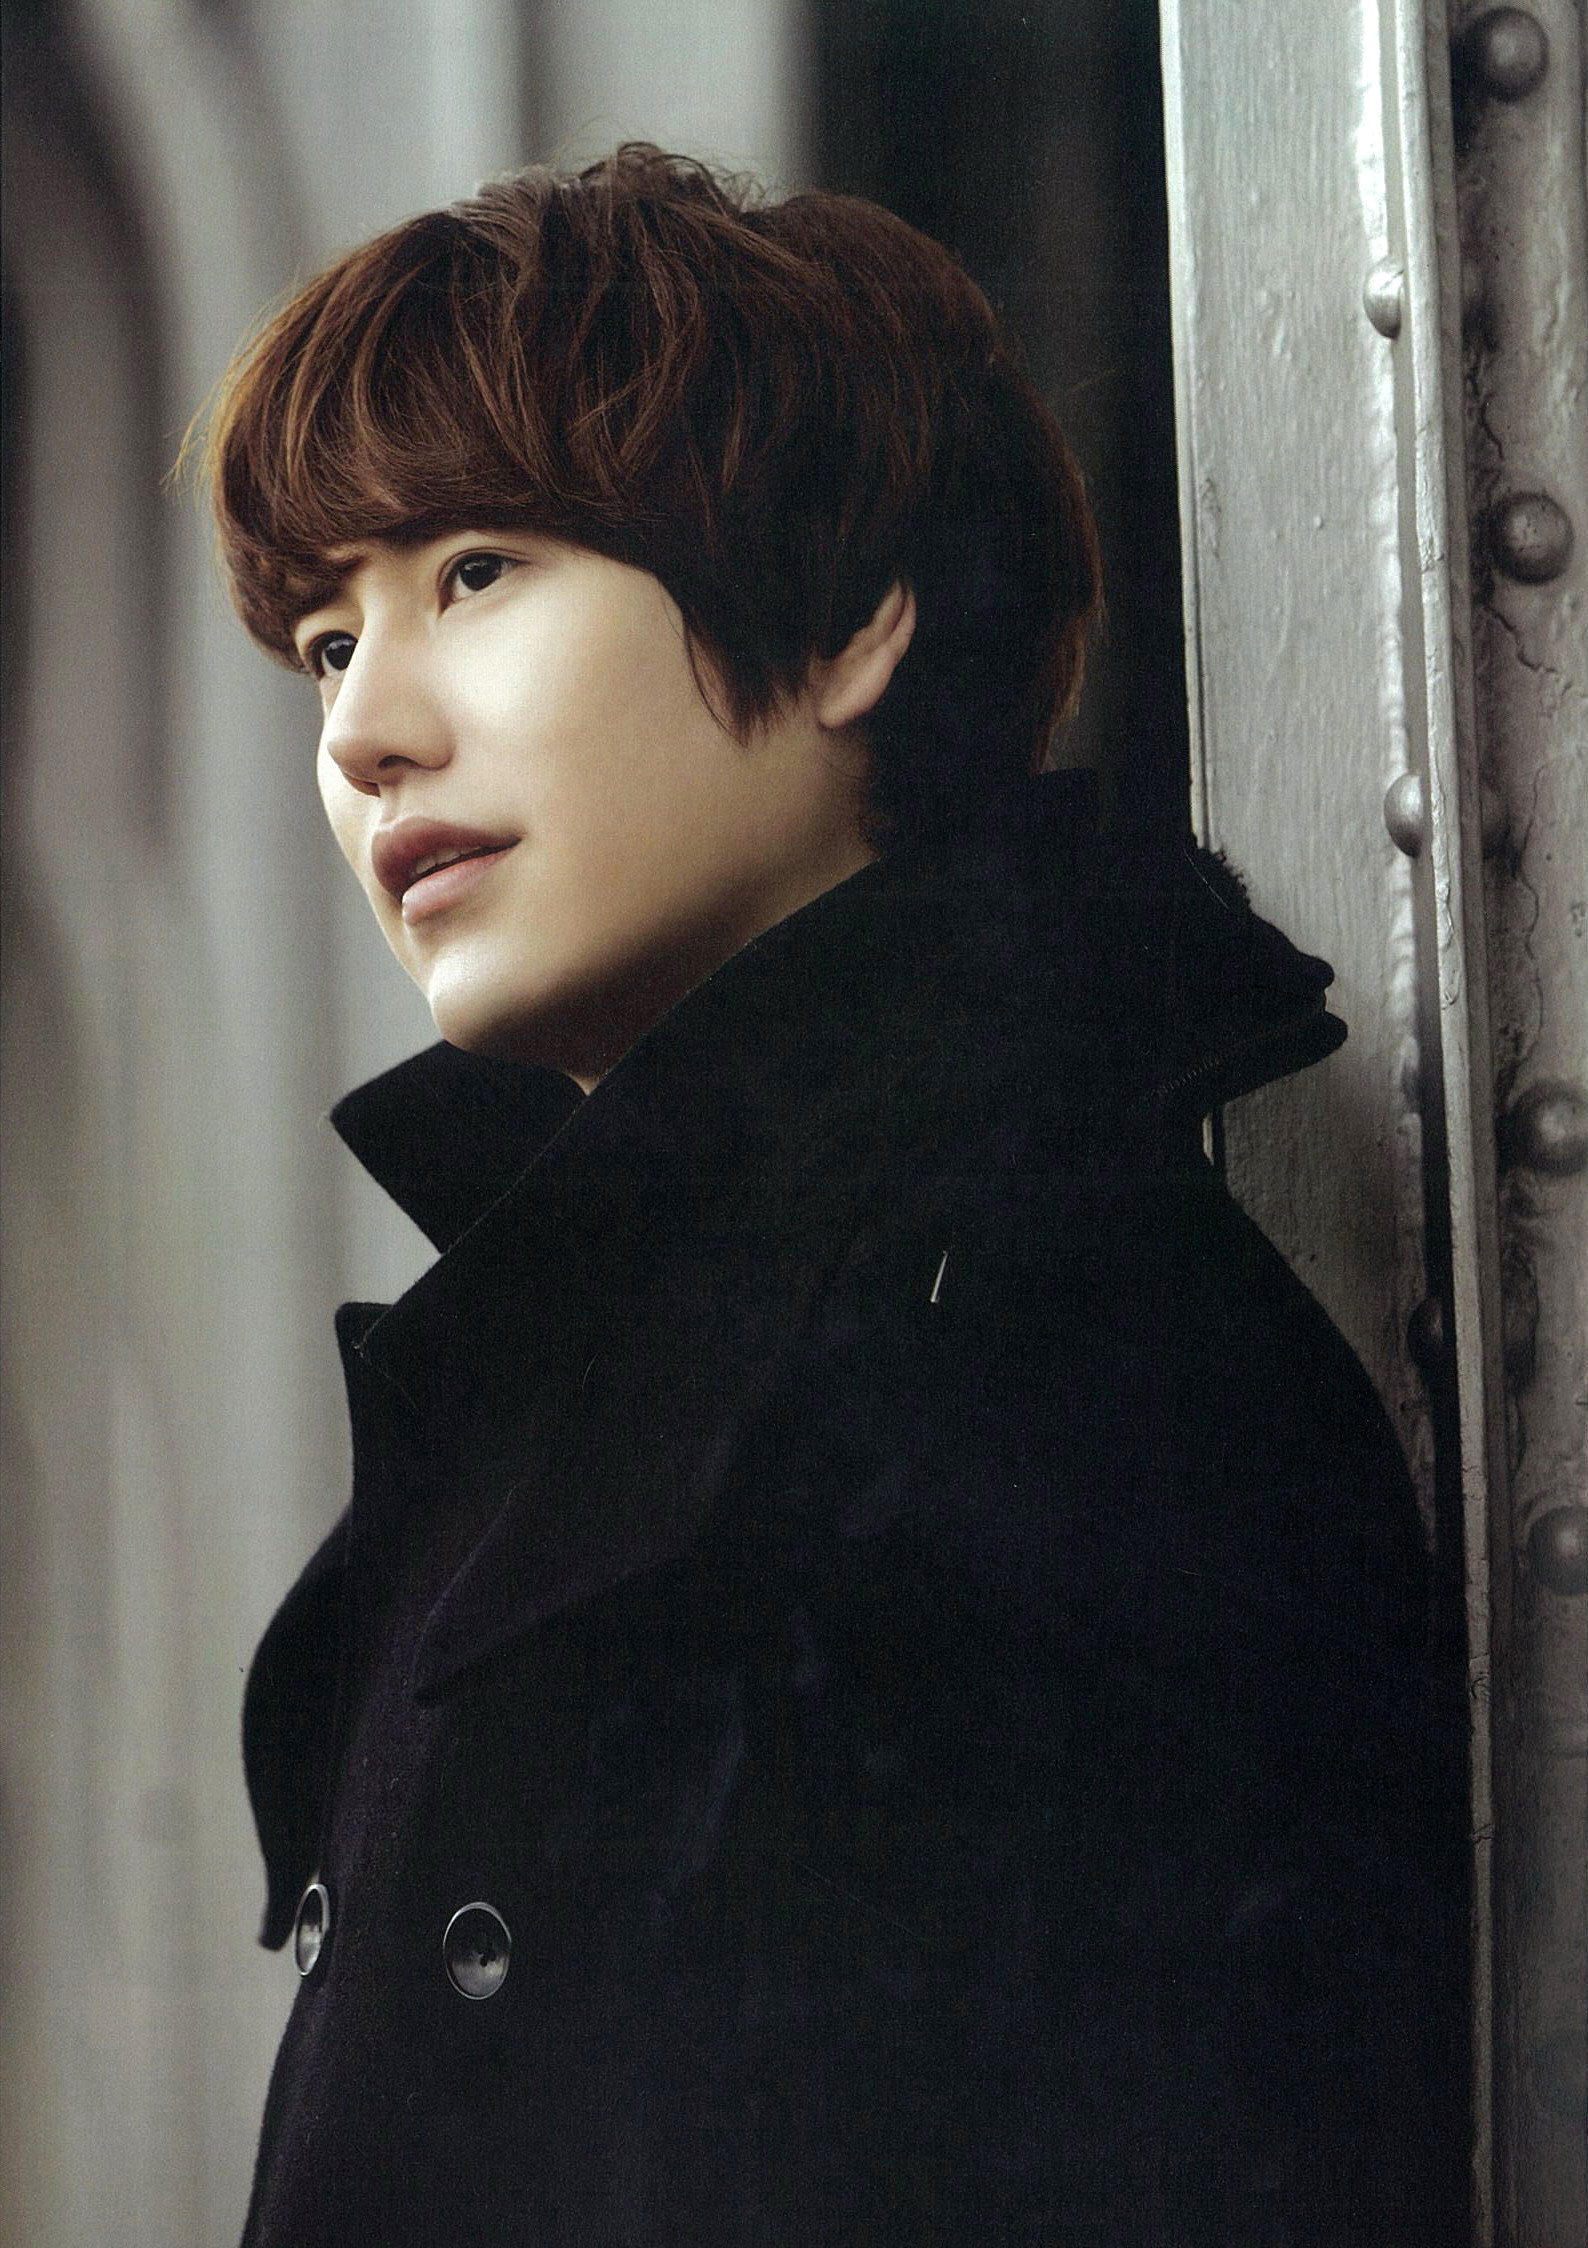 Download Drama Kyuhyun : download, drama, kyuhyun, Kyuhyun, Let's, Learn, About, Super, Junior